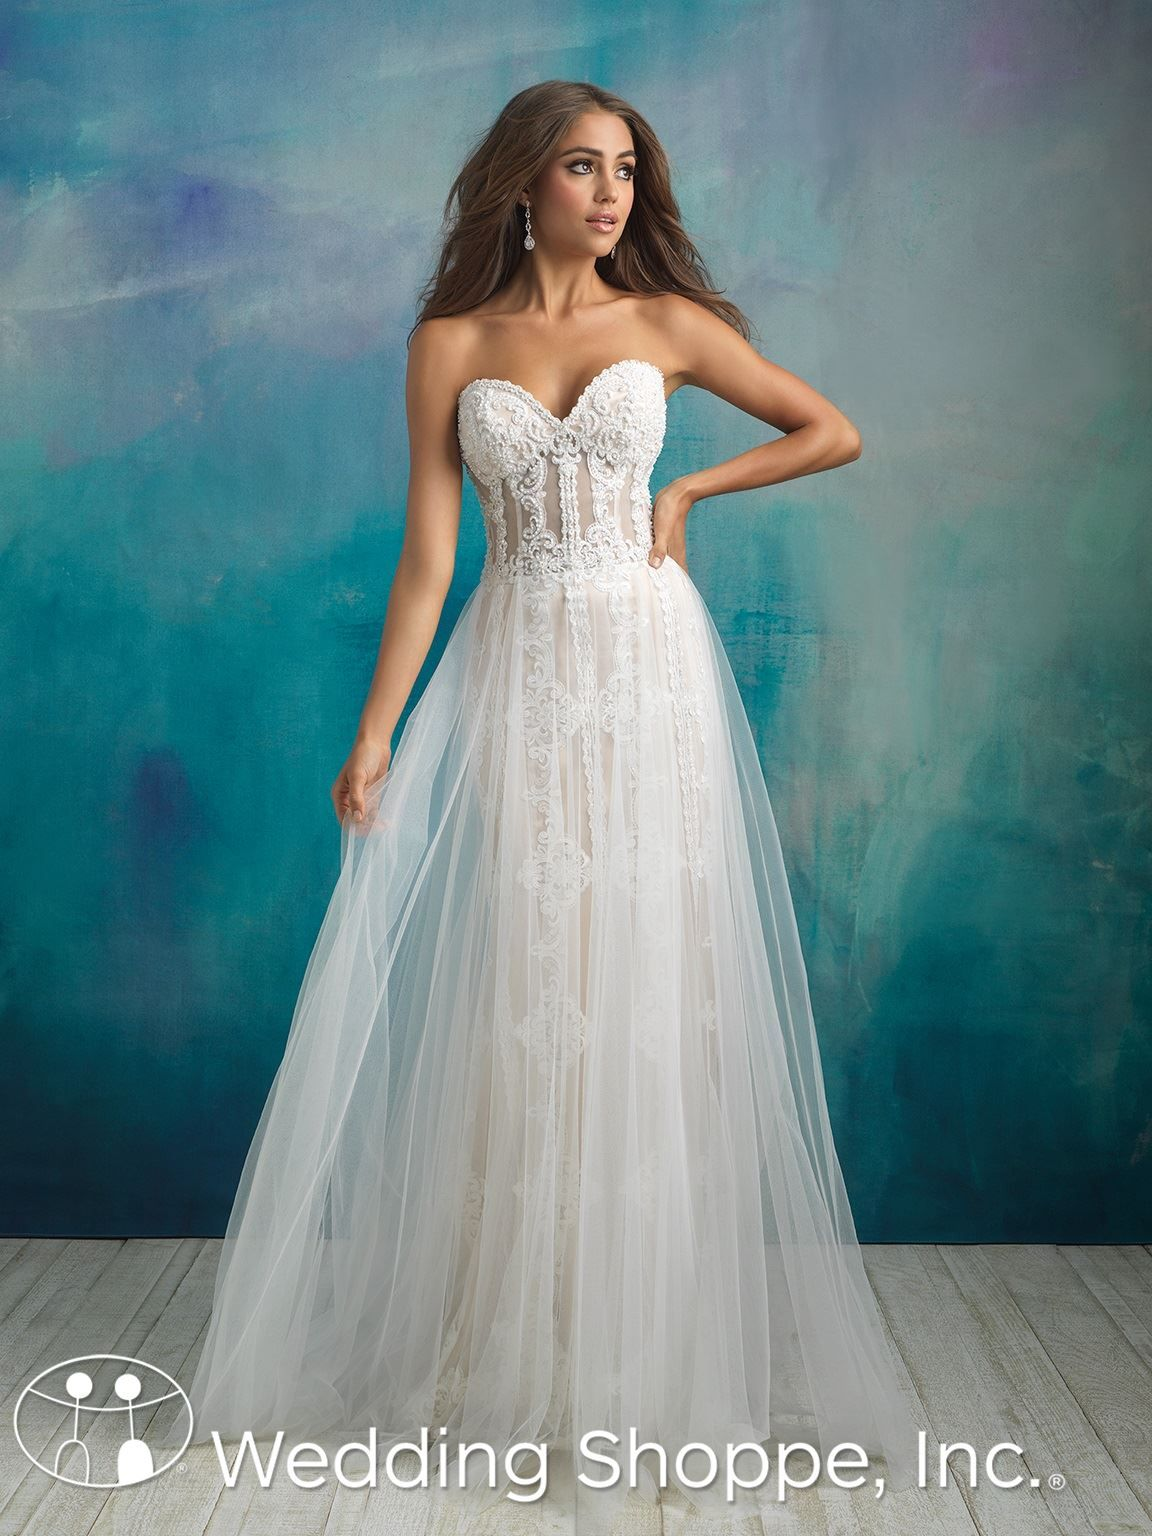 Allure corset dresses are a hot bridal trend in 2018 | 2018 Bridal ...